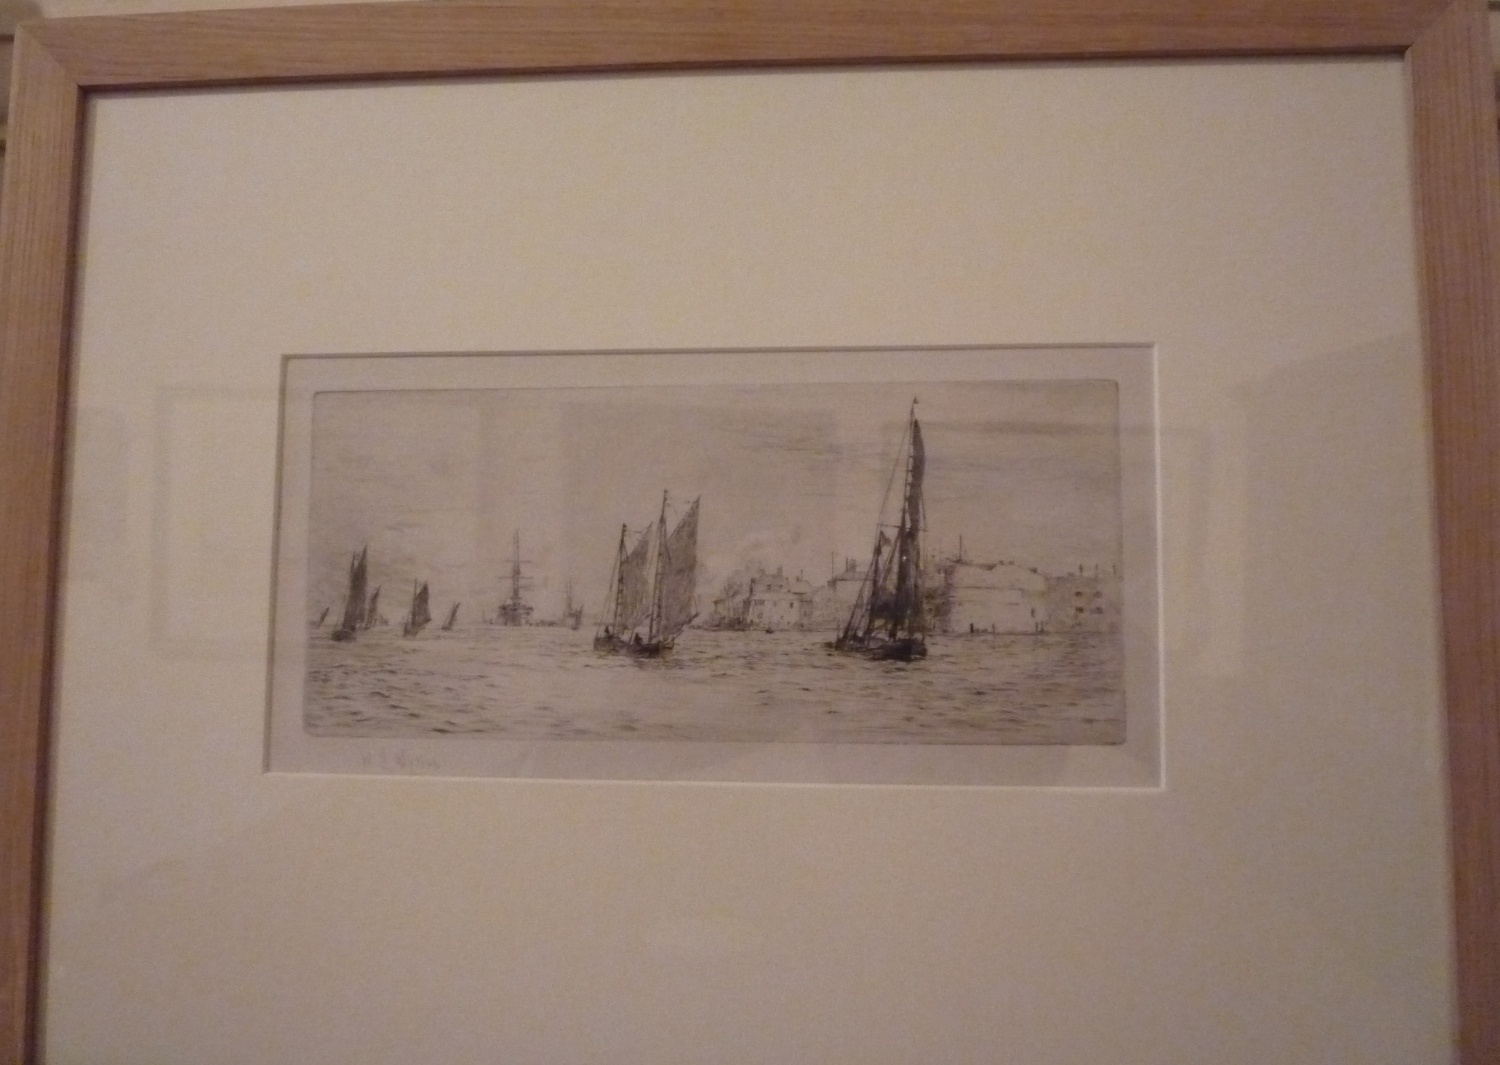 Etching by W.L.Wyllie 'Portsmouth entrance'